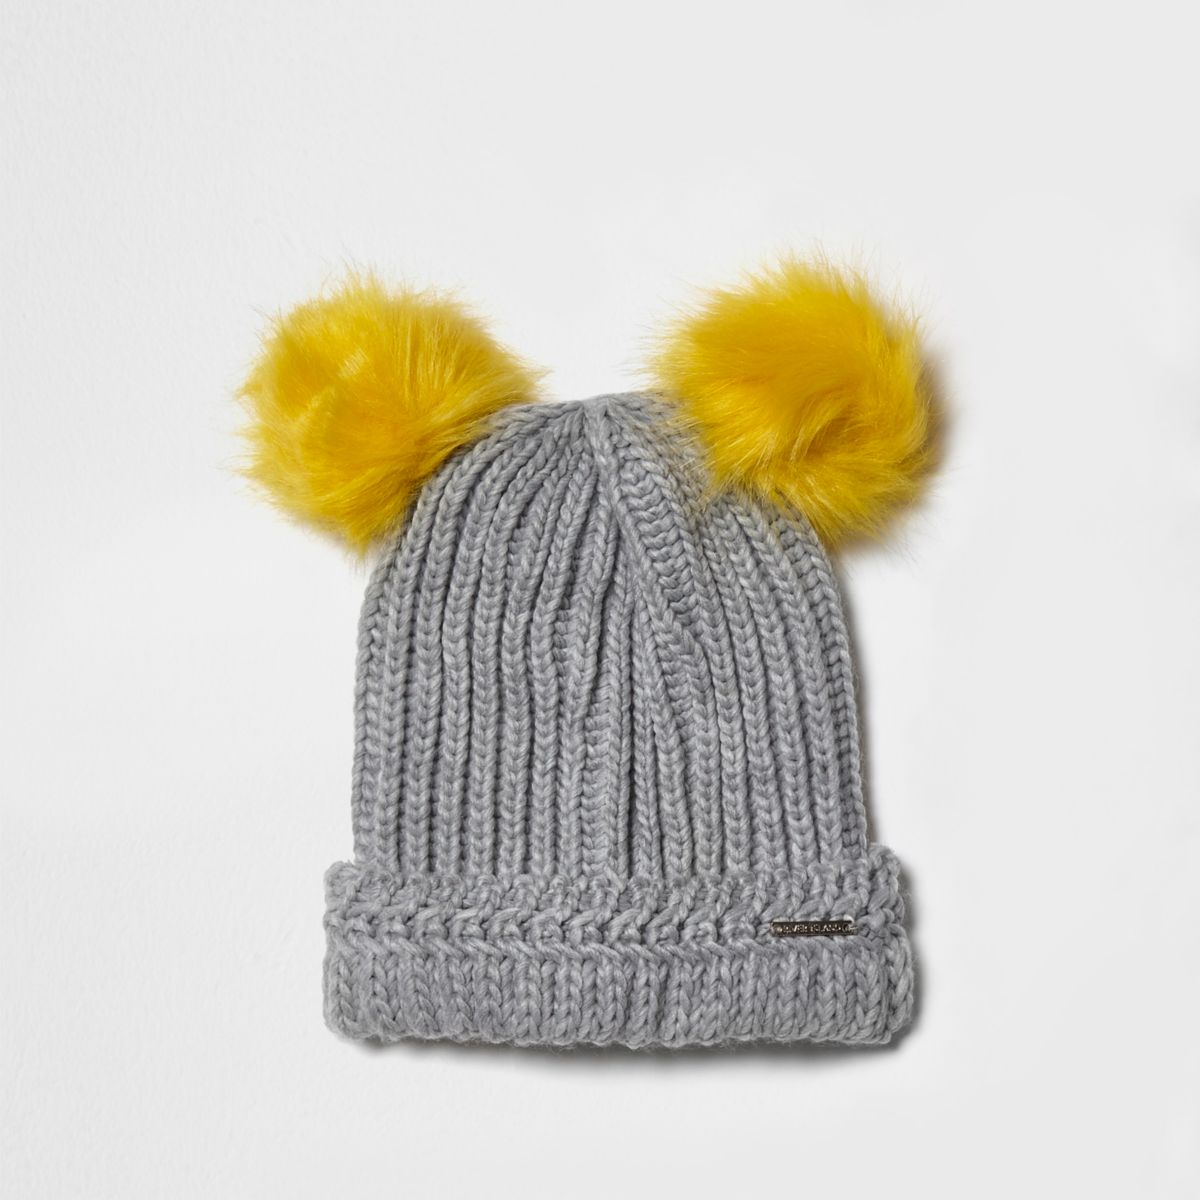 Light grey knit pom pom ear beanie hat